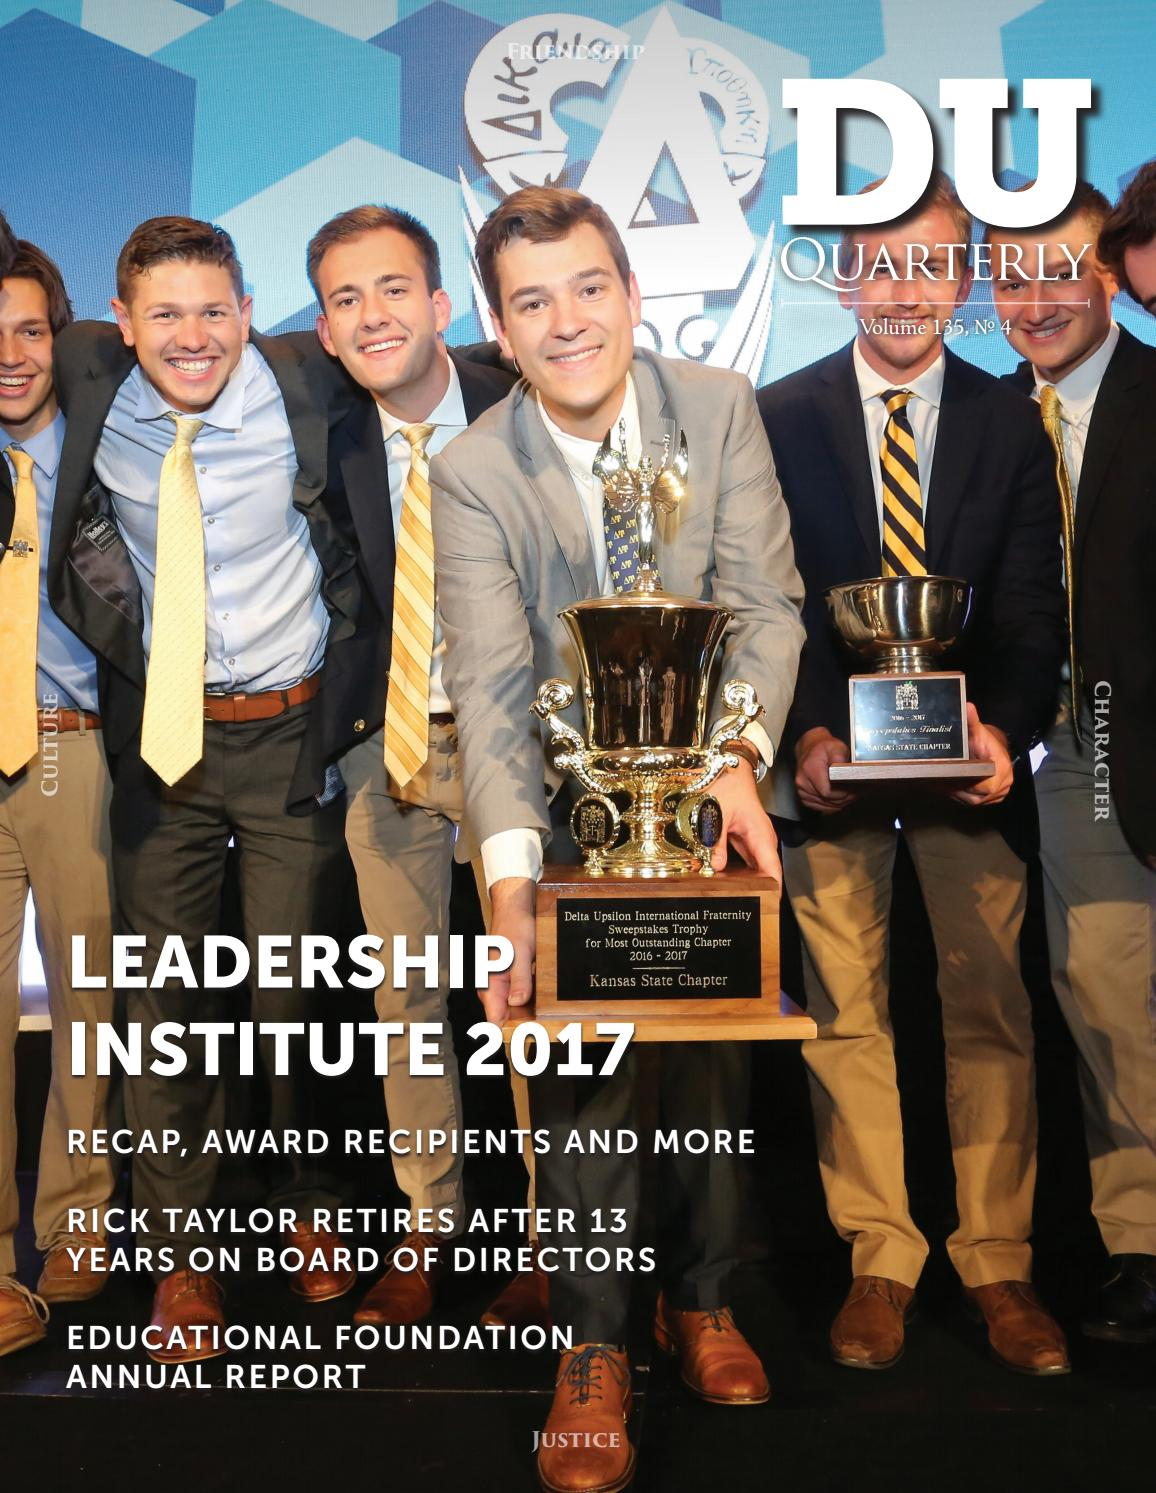 DU Quarterly: Vol  135 4 by Delta Upsilon - issuu